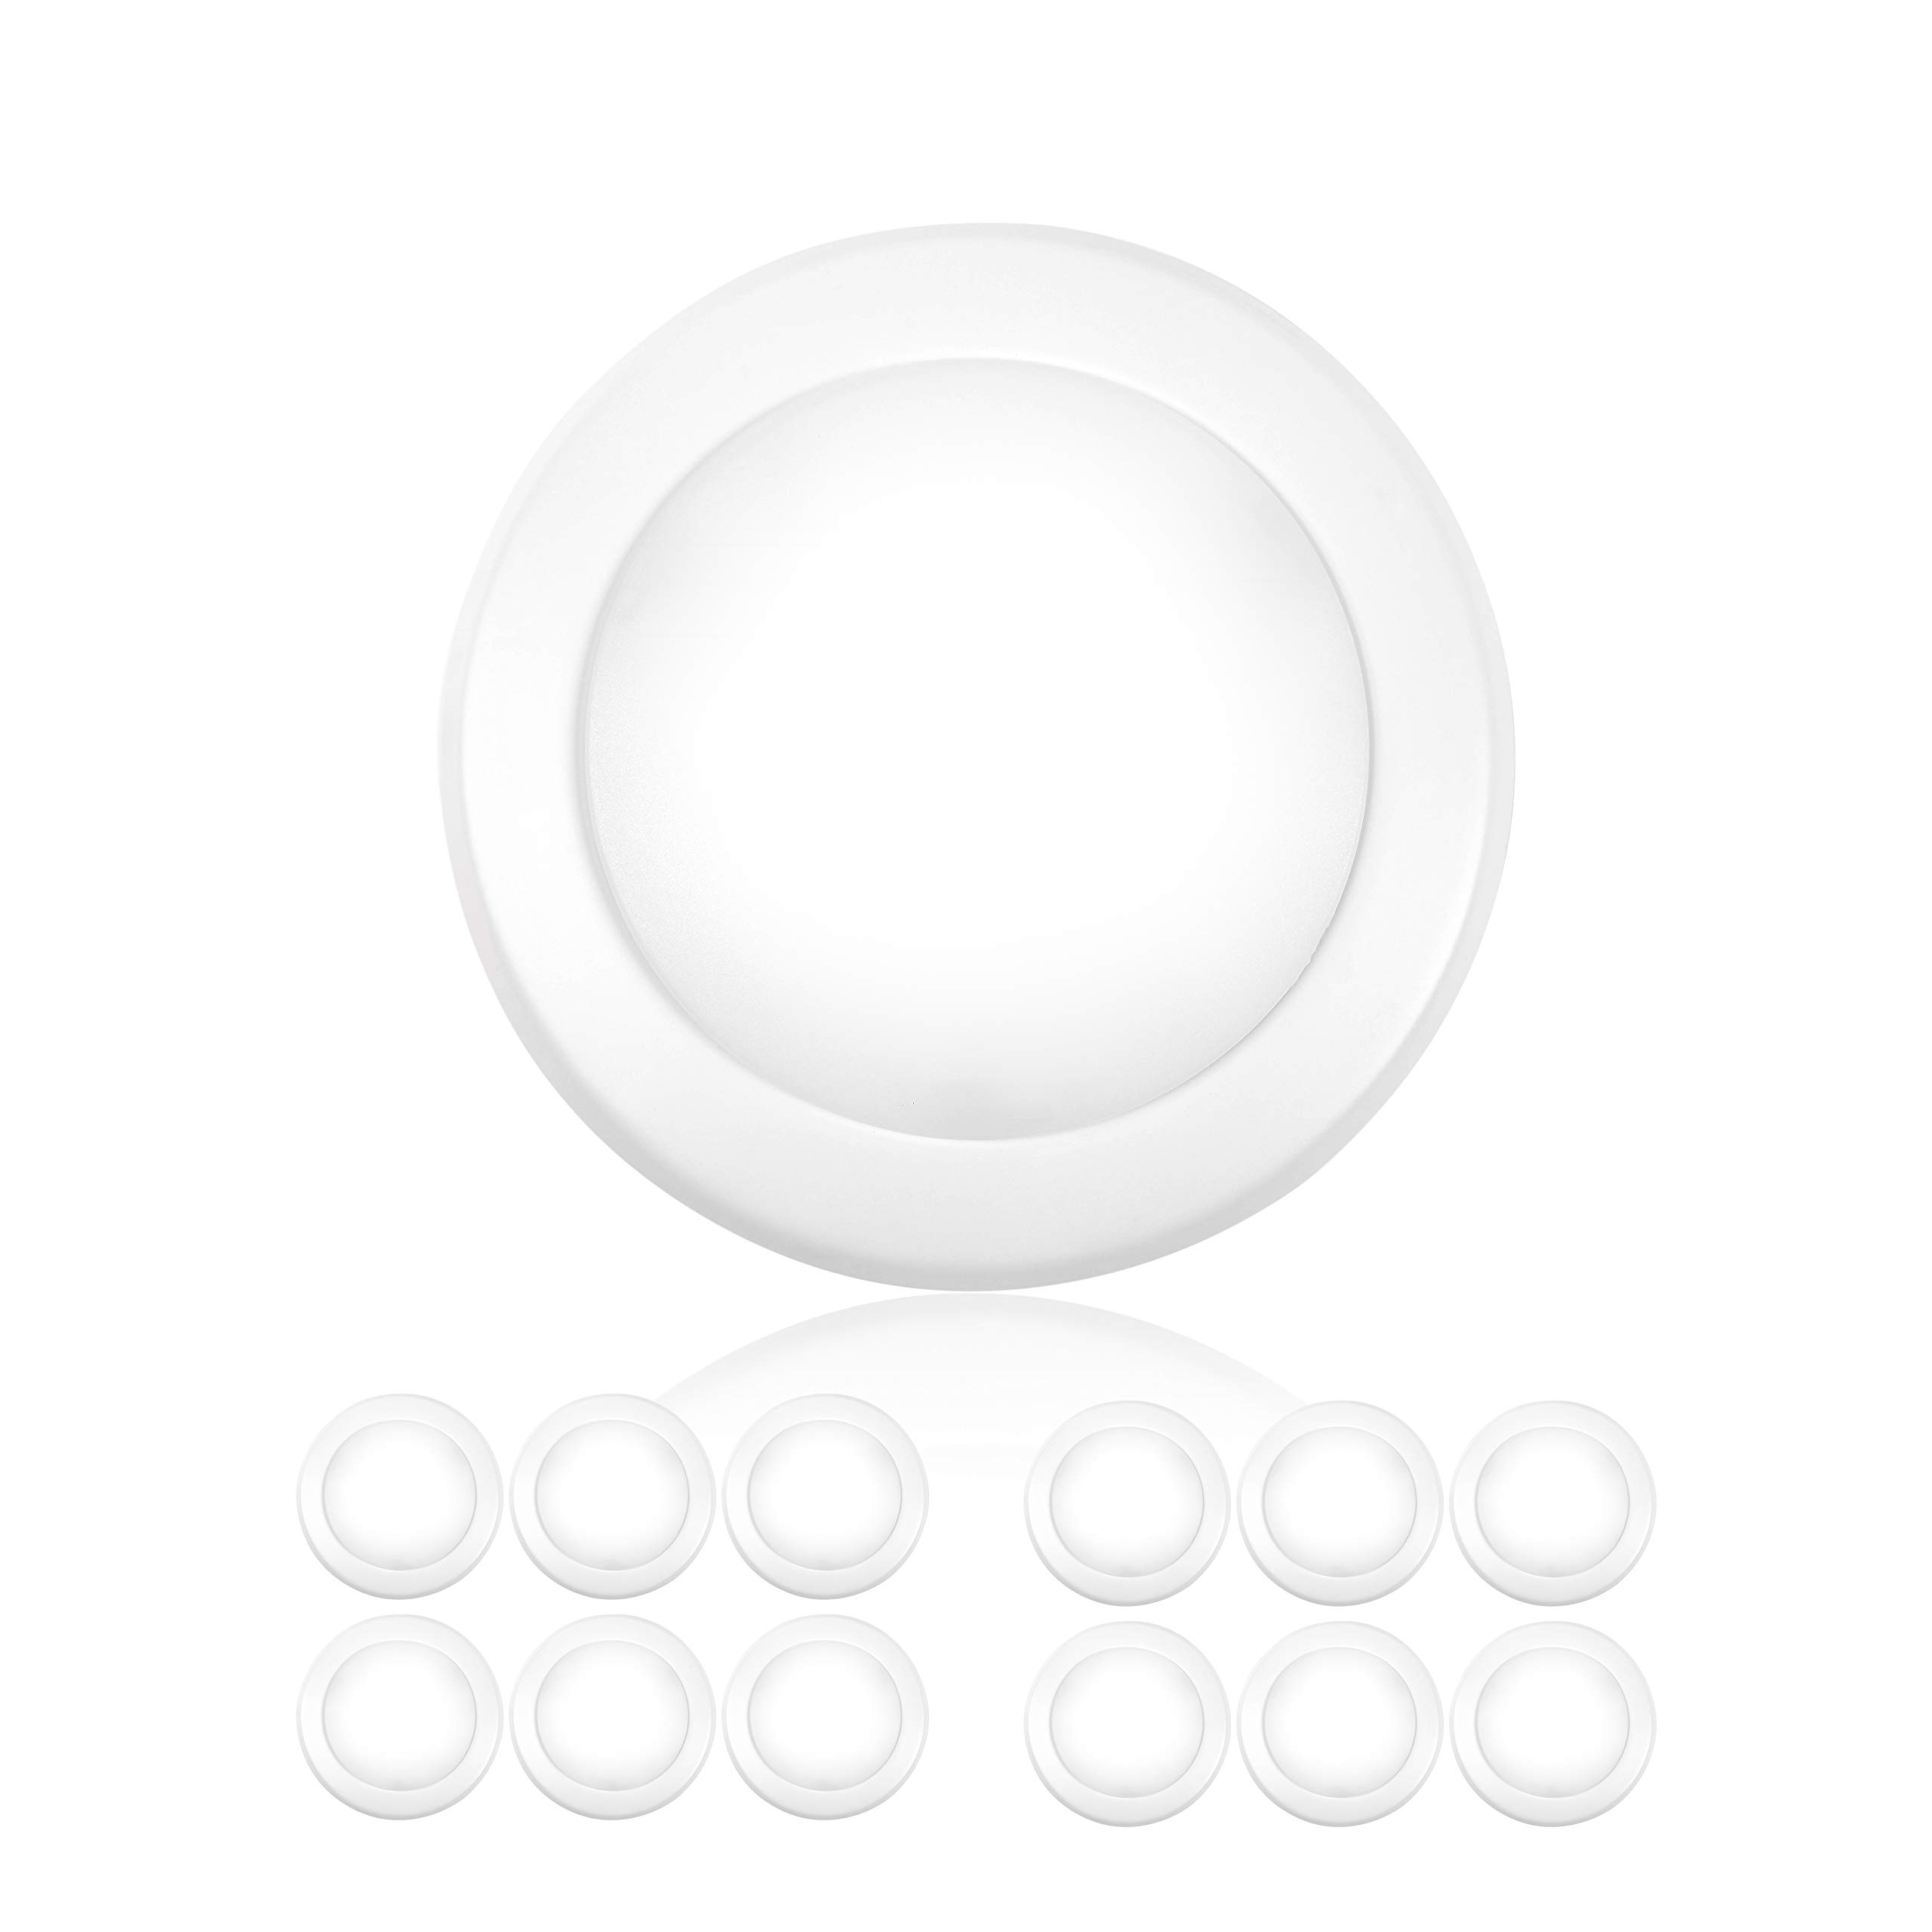 Parmida (12 Pack) 5/6'' Dimmable LED Disk Light Flush Mount Recessed Retrofit Ceiling Lights, 15W (120W Replacement), 5000K (Day Light), Energy Star, Installs into Junction Box Or Recessed Can, 1050lm by Parmida LED Technologies (Image #1)